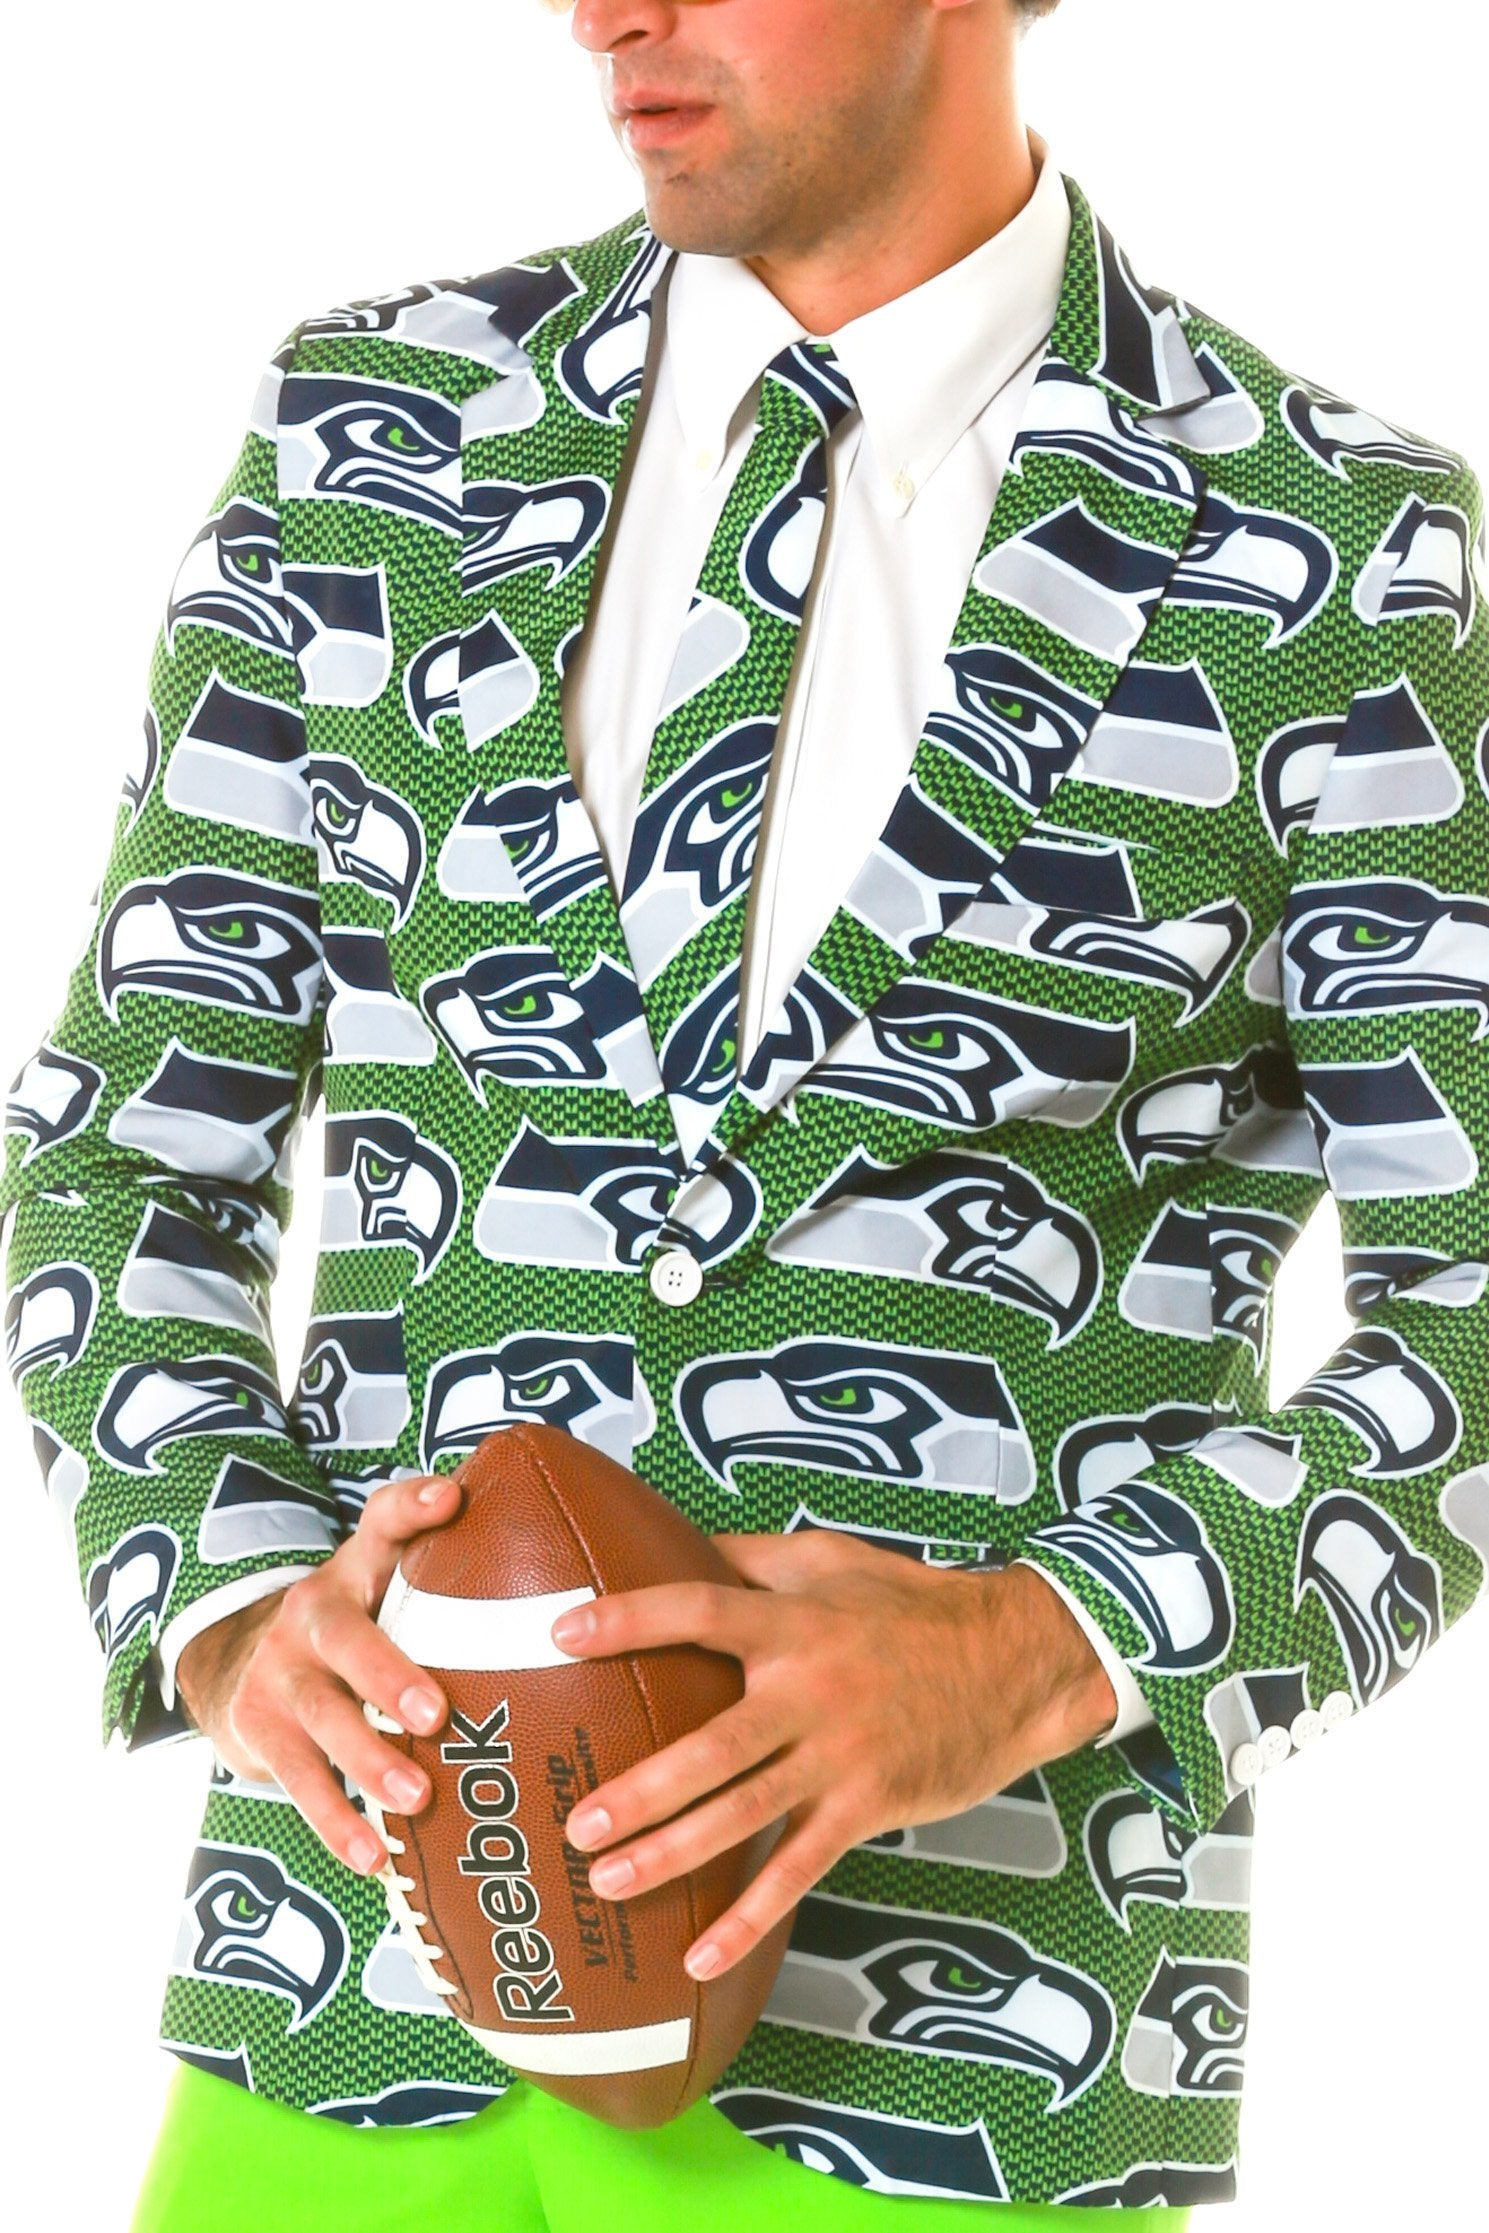 The Seattle Seahawks | Suit Jacket